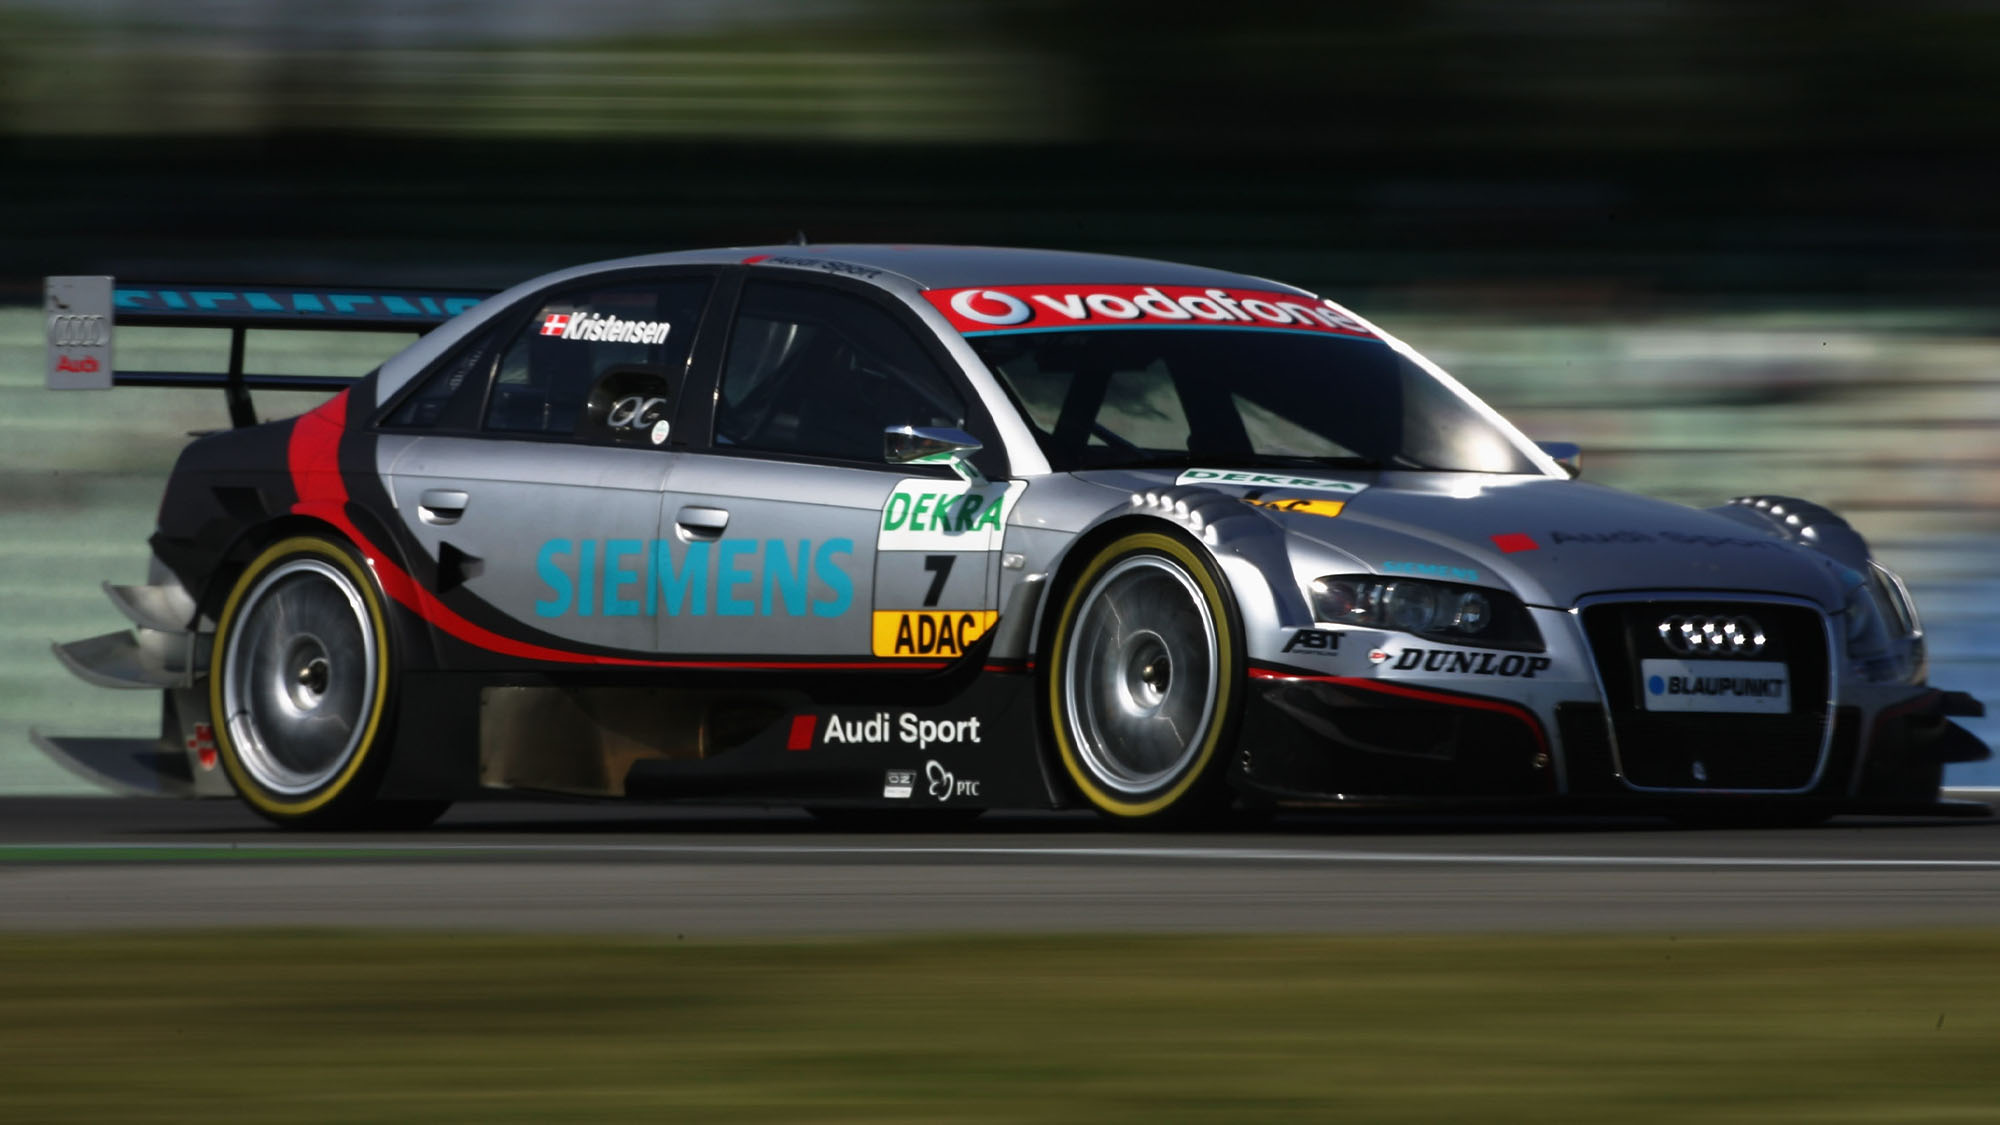 HOCKENHEIM, GERMANY - APRIL 20: Tom Kristensen of Denmark and Audi Sport Team Abt Sportsline in action during the second test for the first round of the DTM 2007 German Touring Car Championship at the Hockenheimring on April 20, 2007 in Hockenheim, Germany. (Photo by Lars Baron/Bongarts/Getty Images)